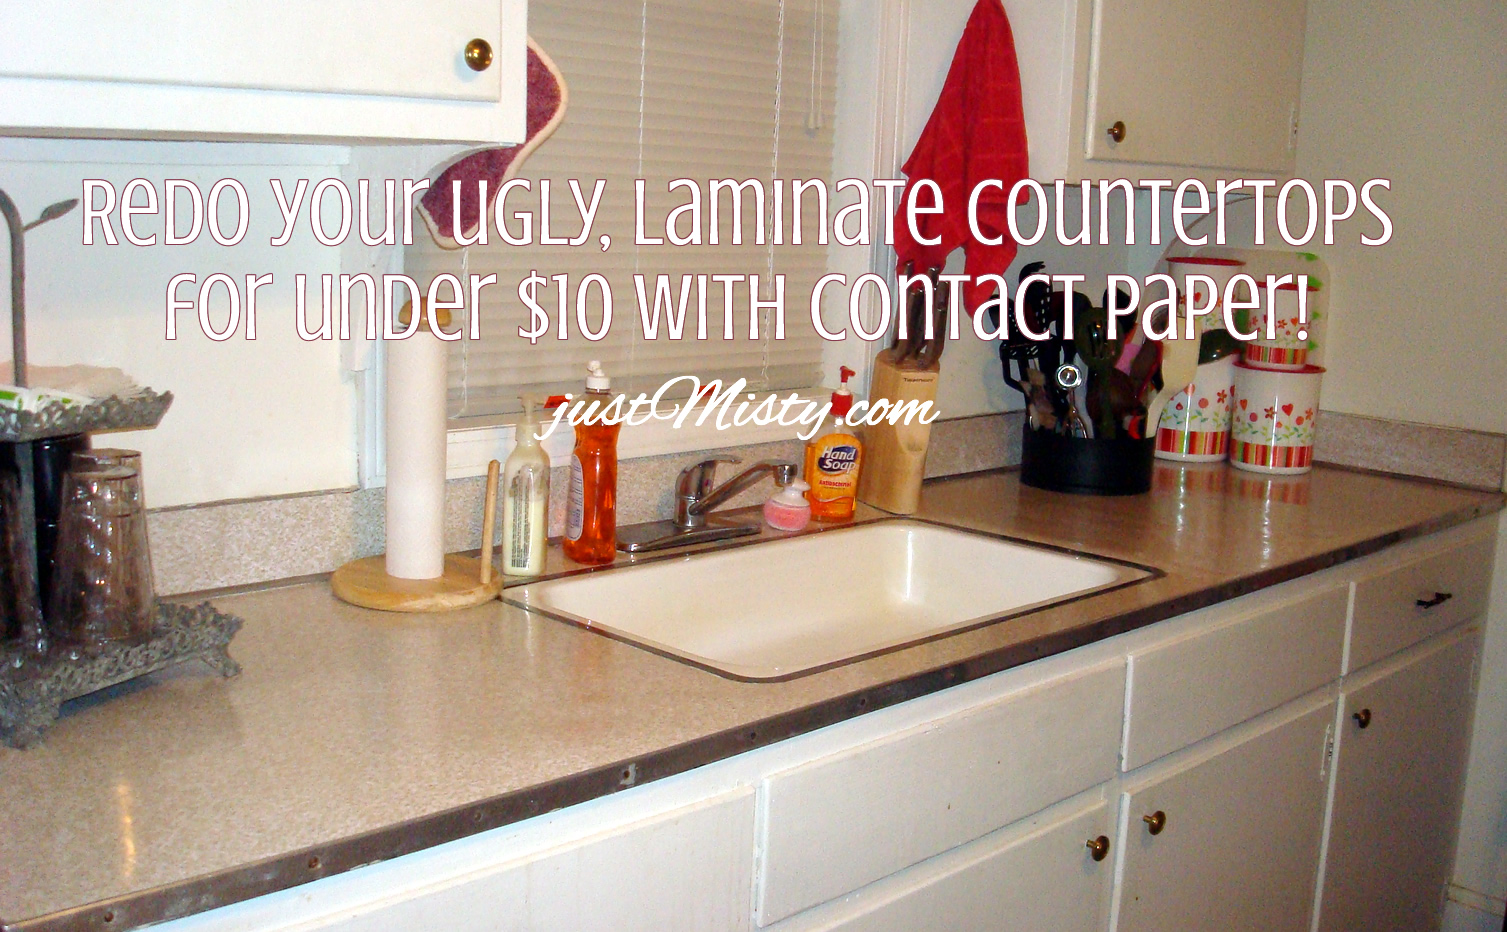 Redo Your Ugly Laminate Countertops